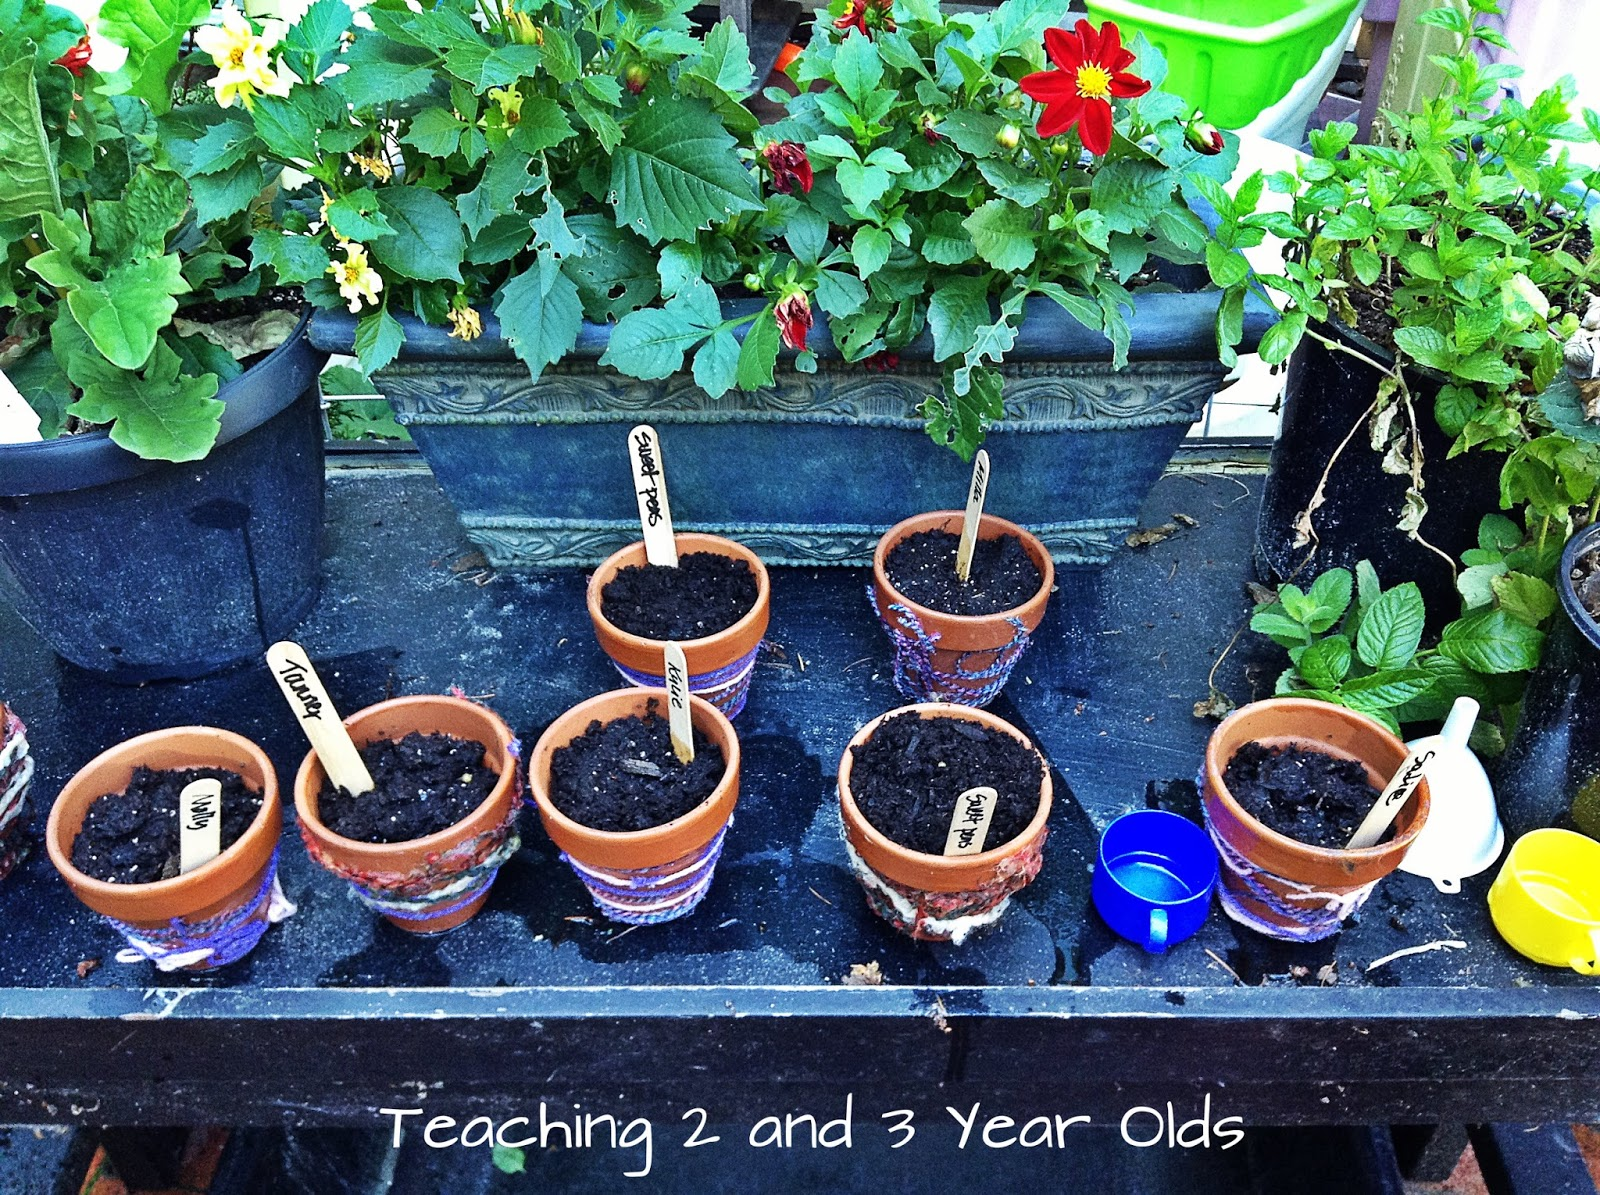 Teaching 2 And 3 Year Olds Preschool Gardening Theme